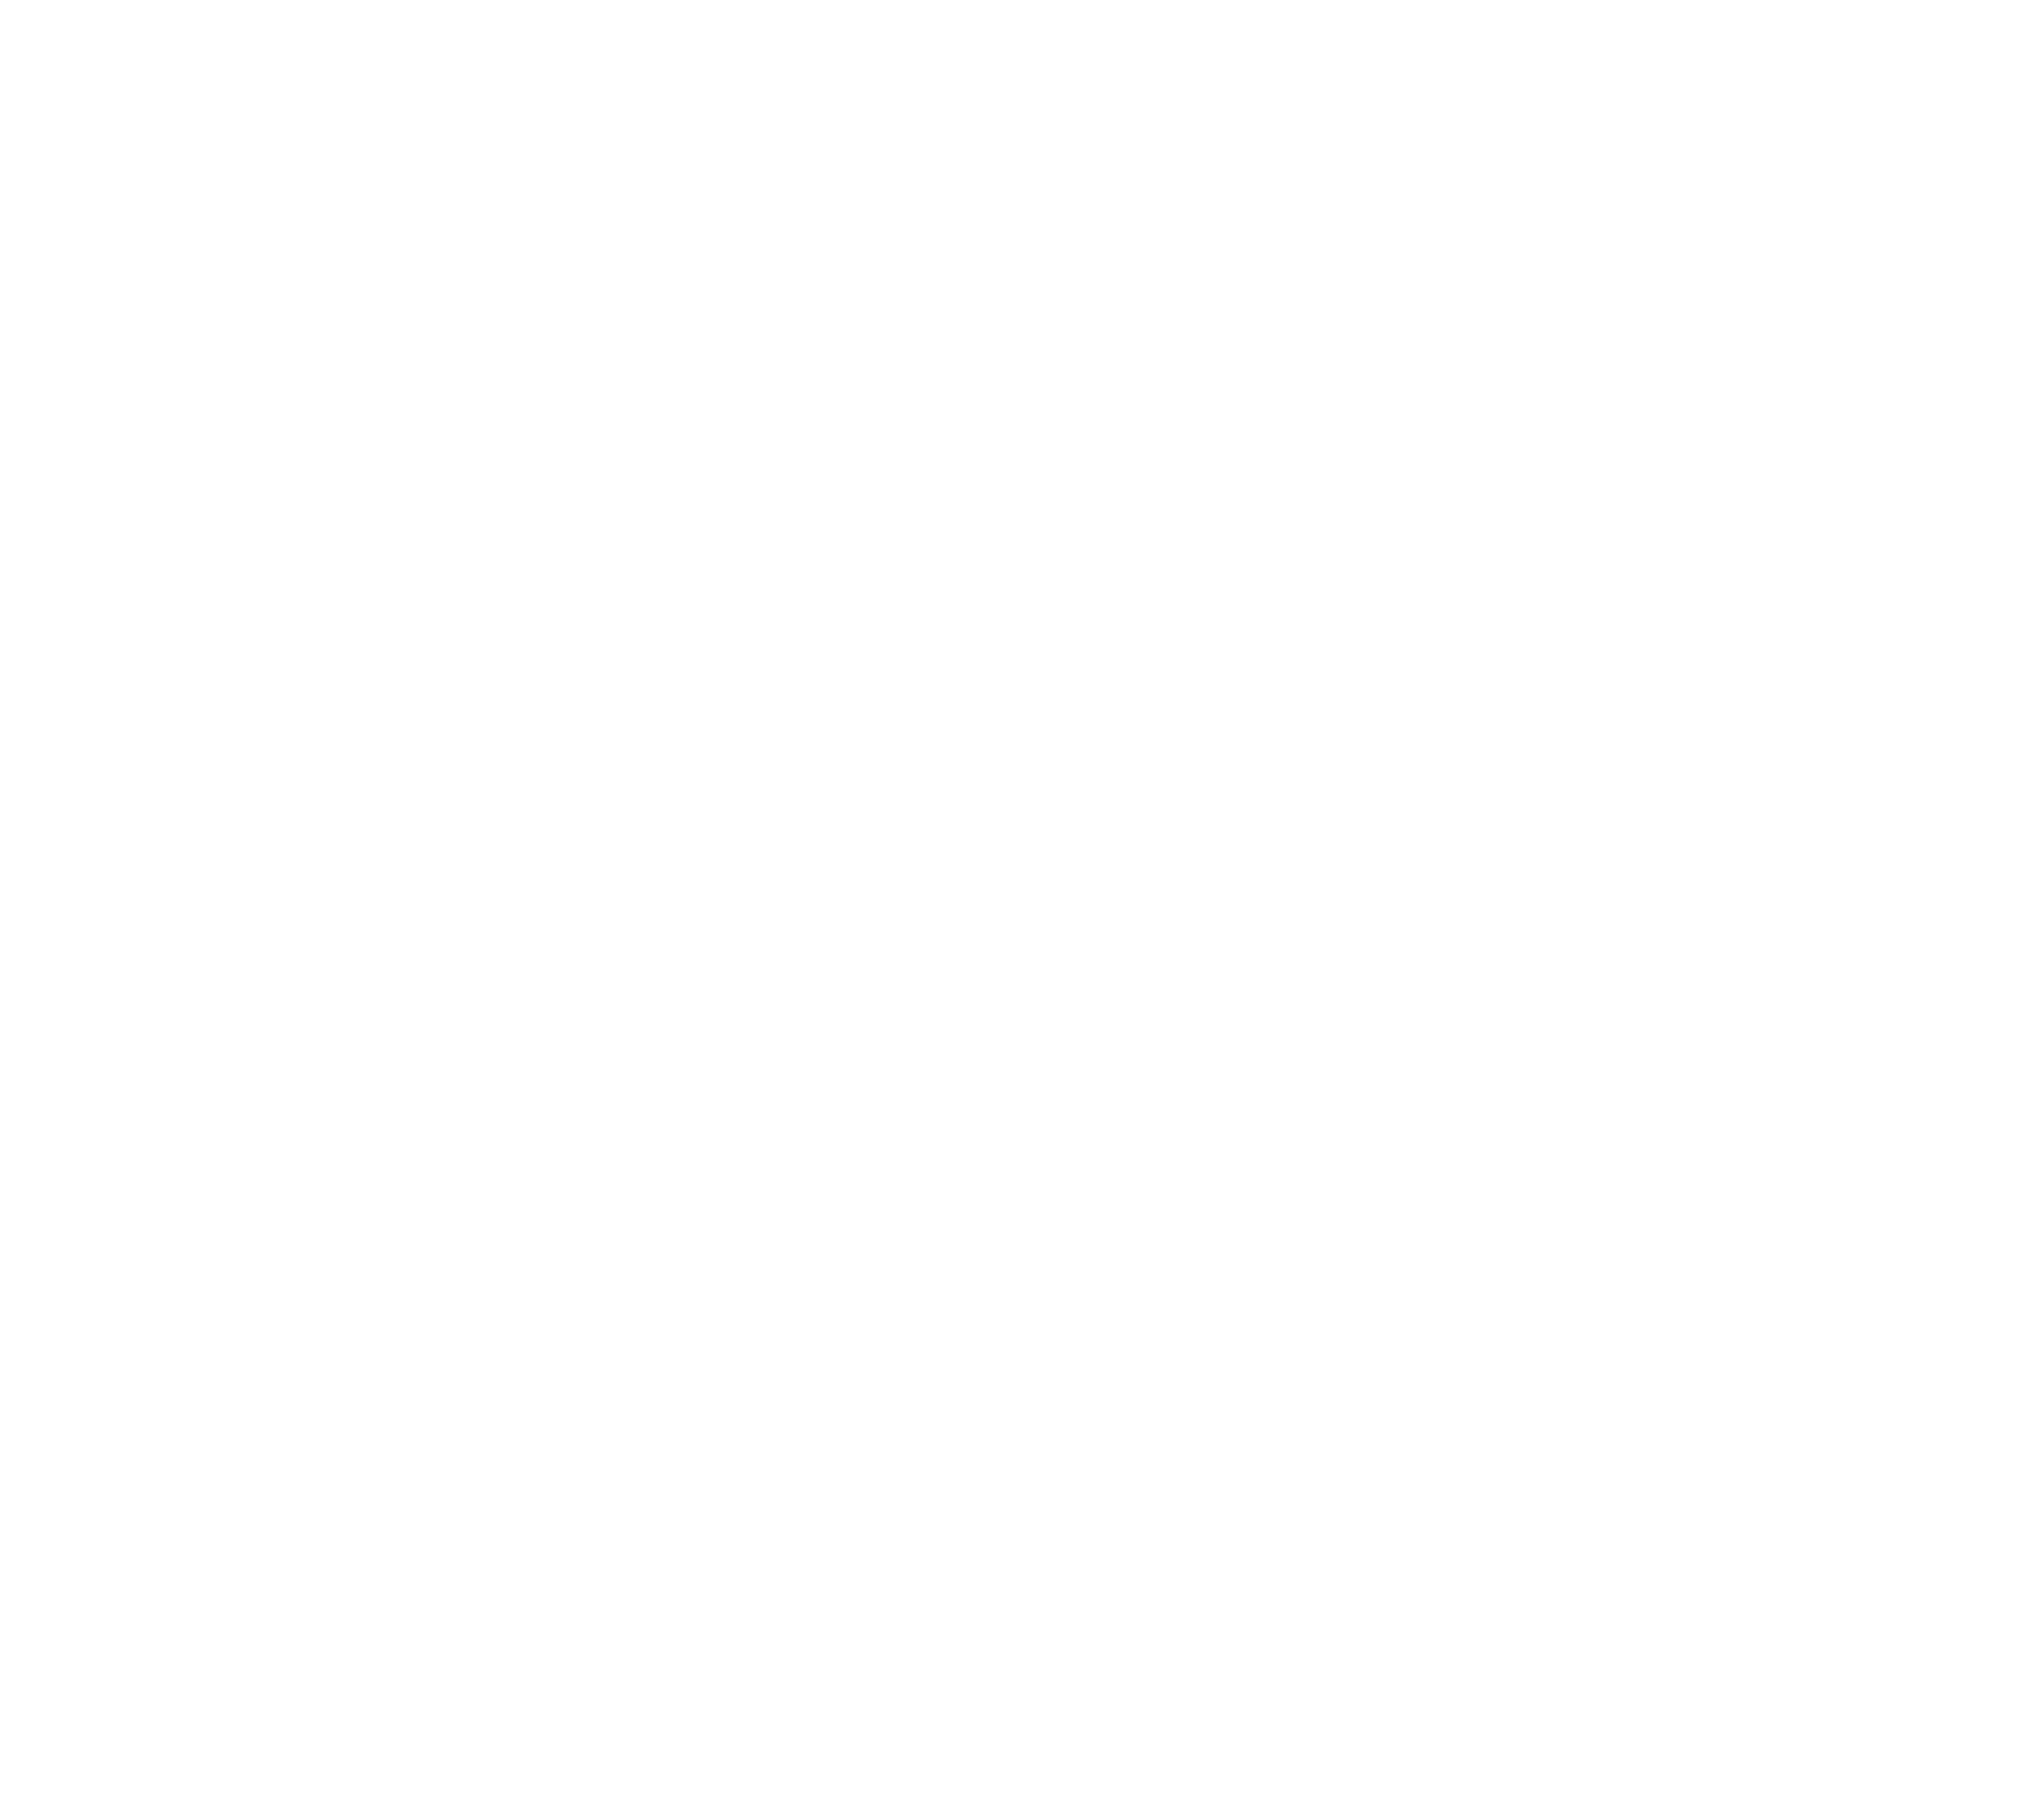 Geneva International String Academy